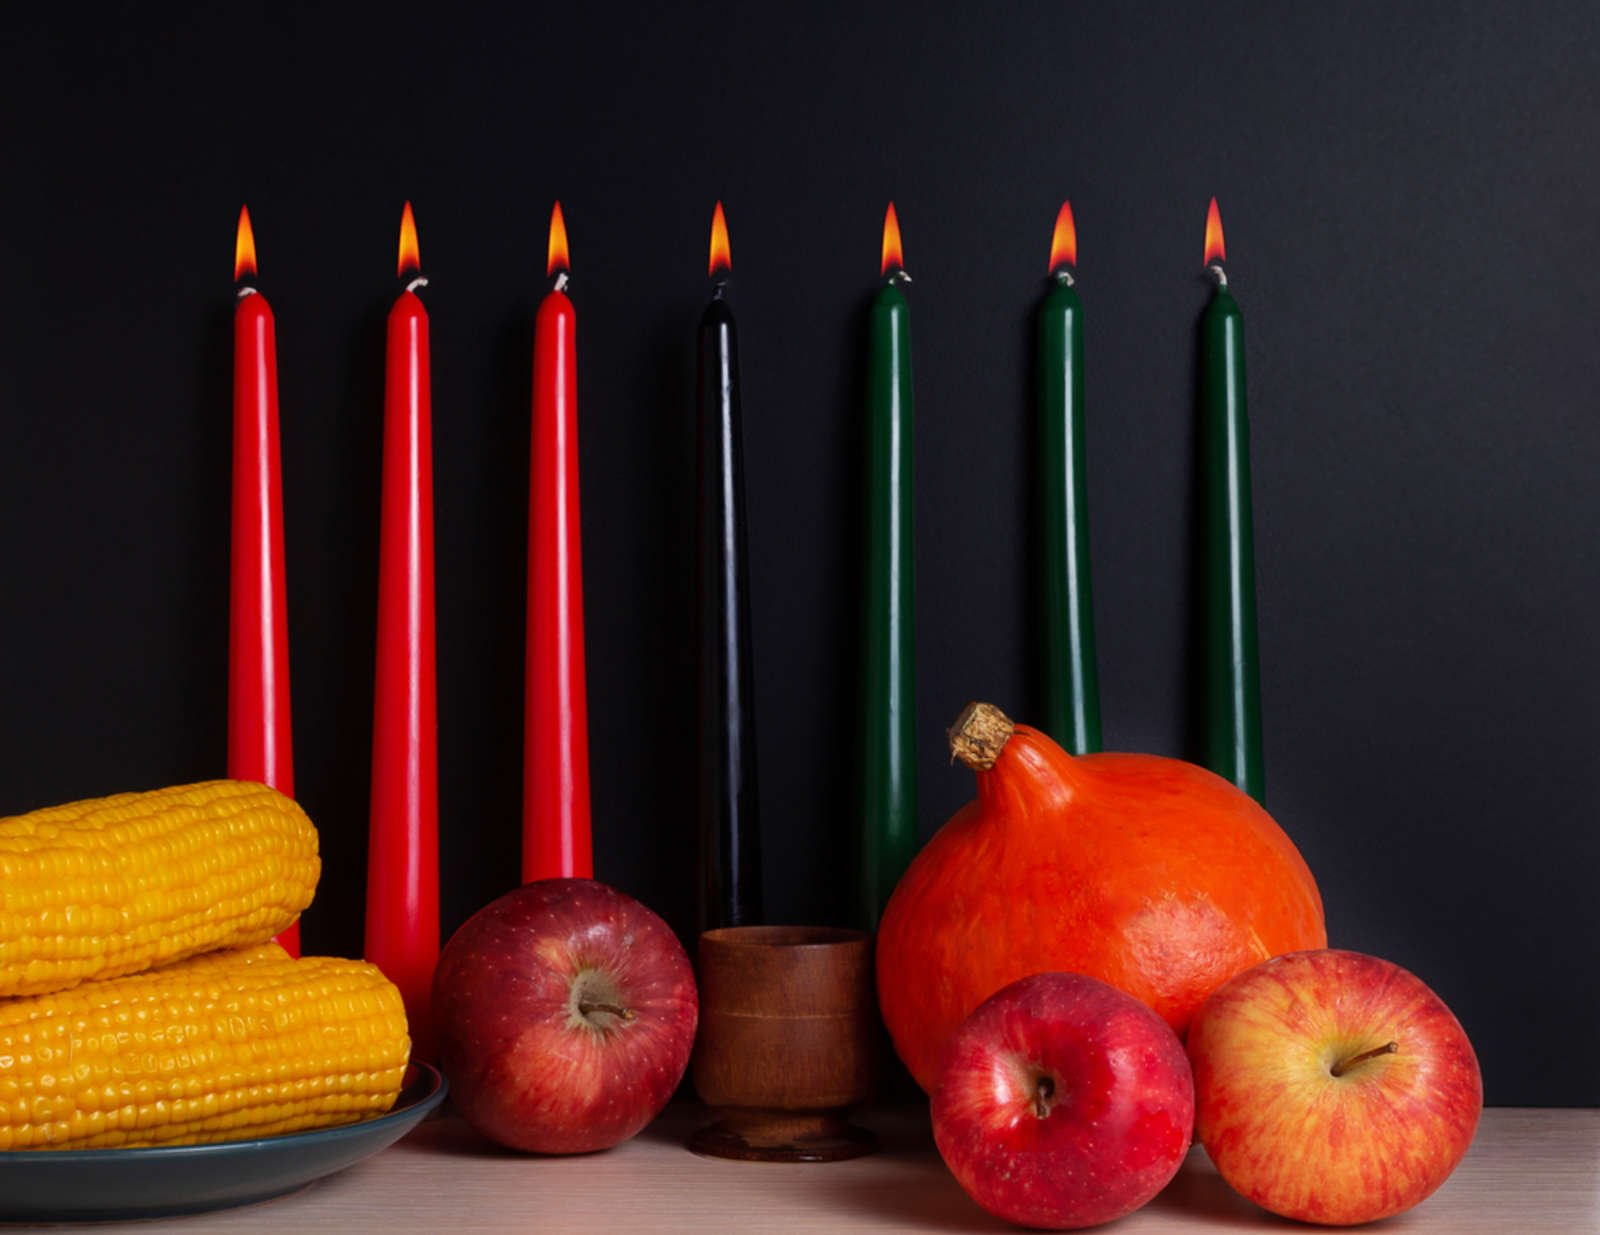 Habari Gani? This Kwanzaa, We're Celebrating All the Beautiful and Resilient Blackness We Saw in 2020